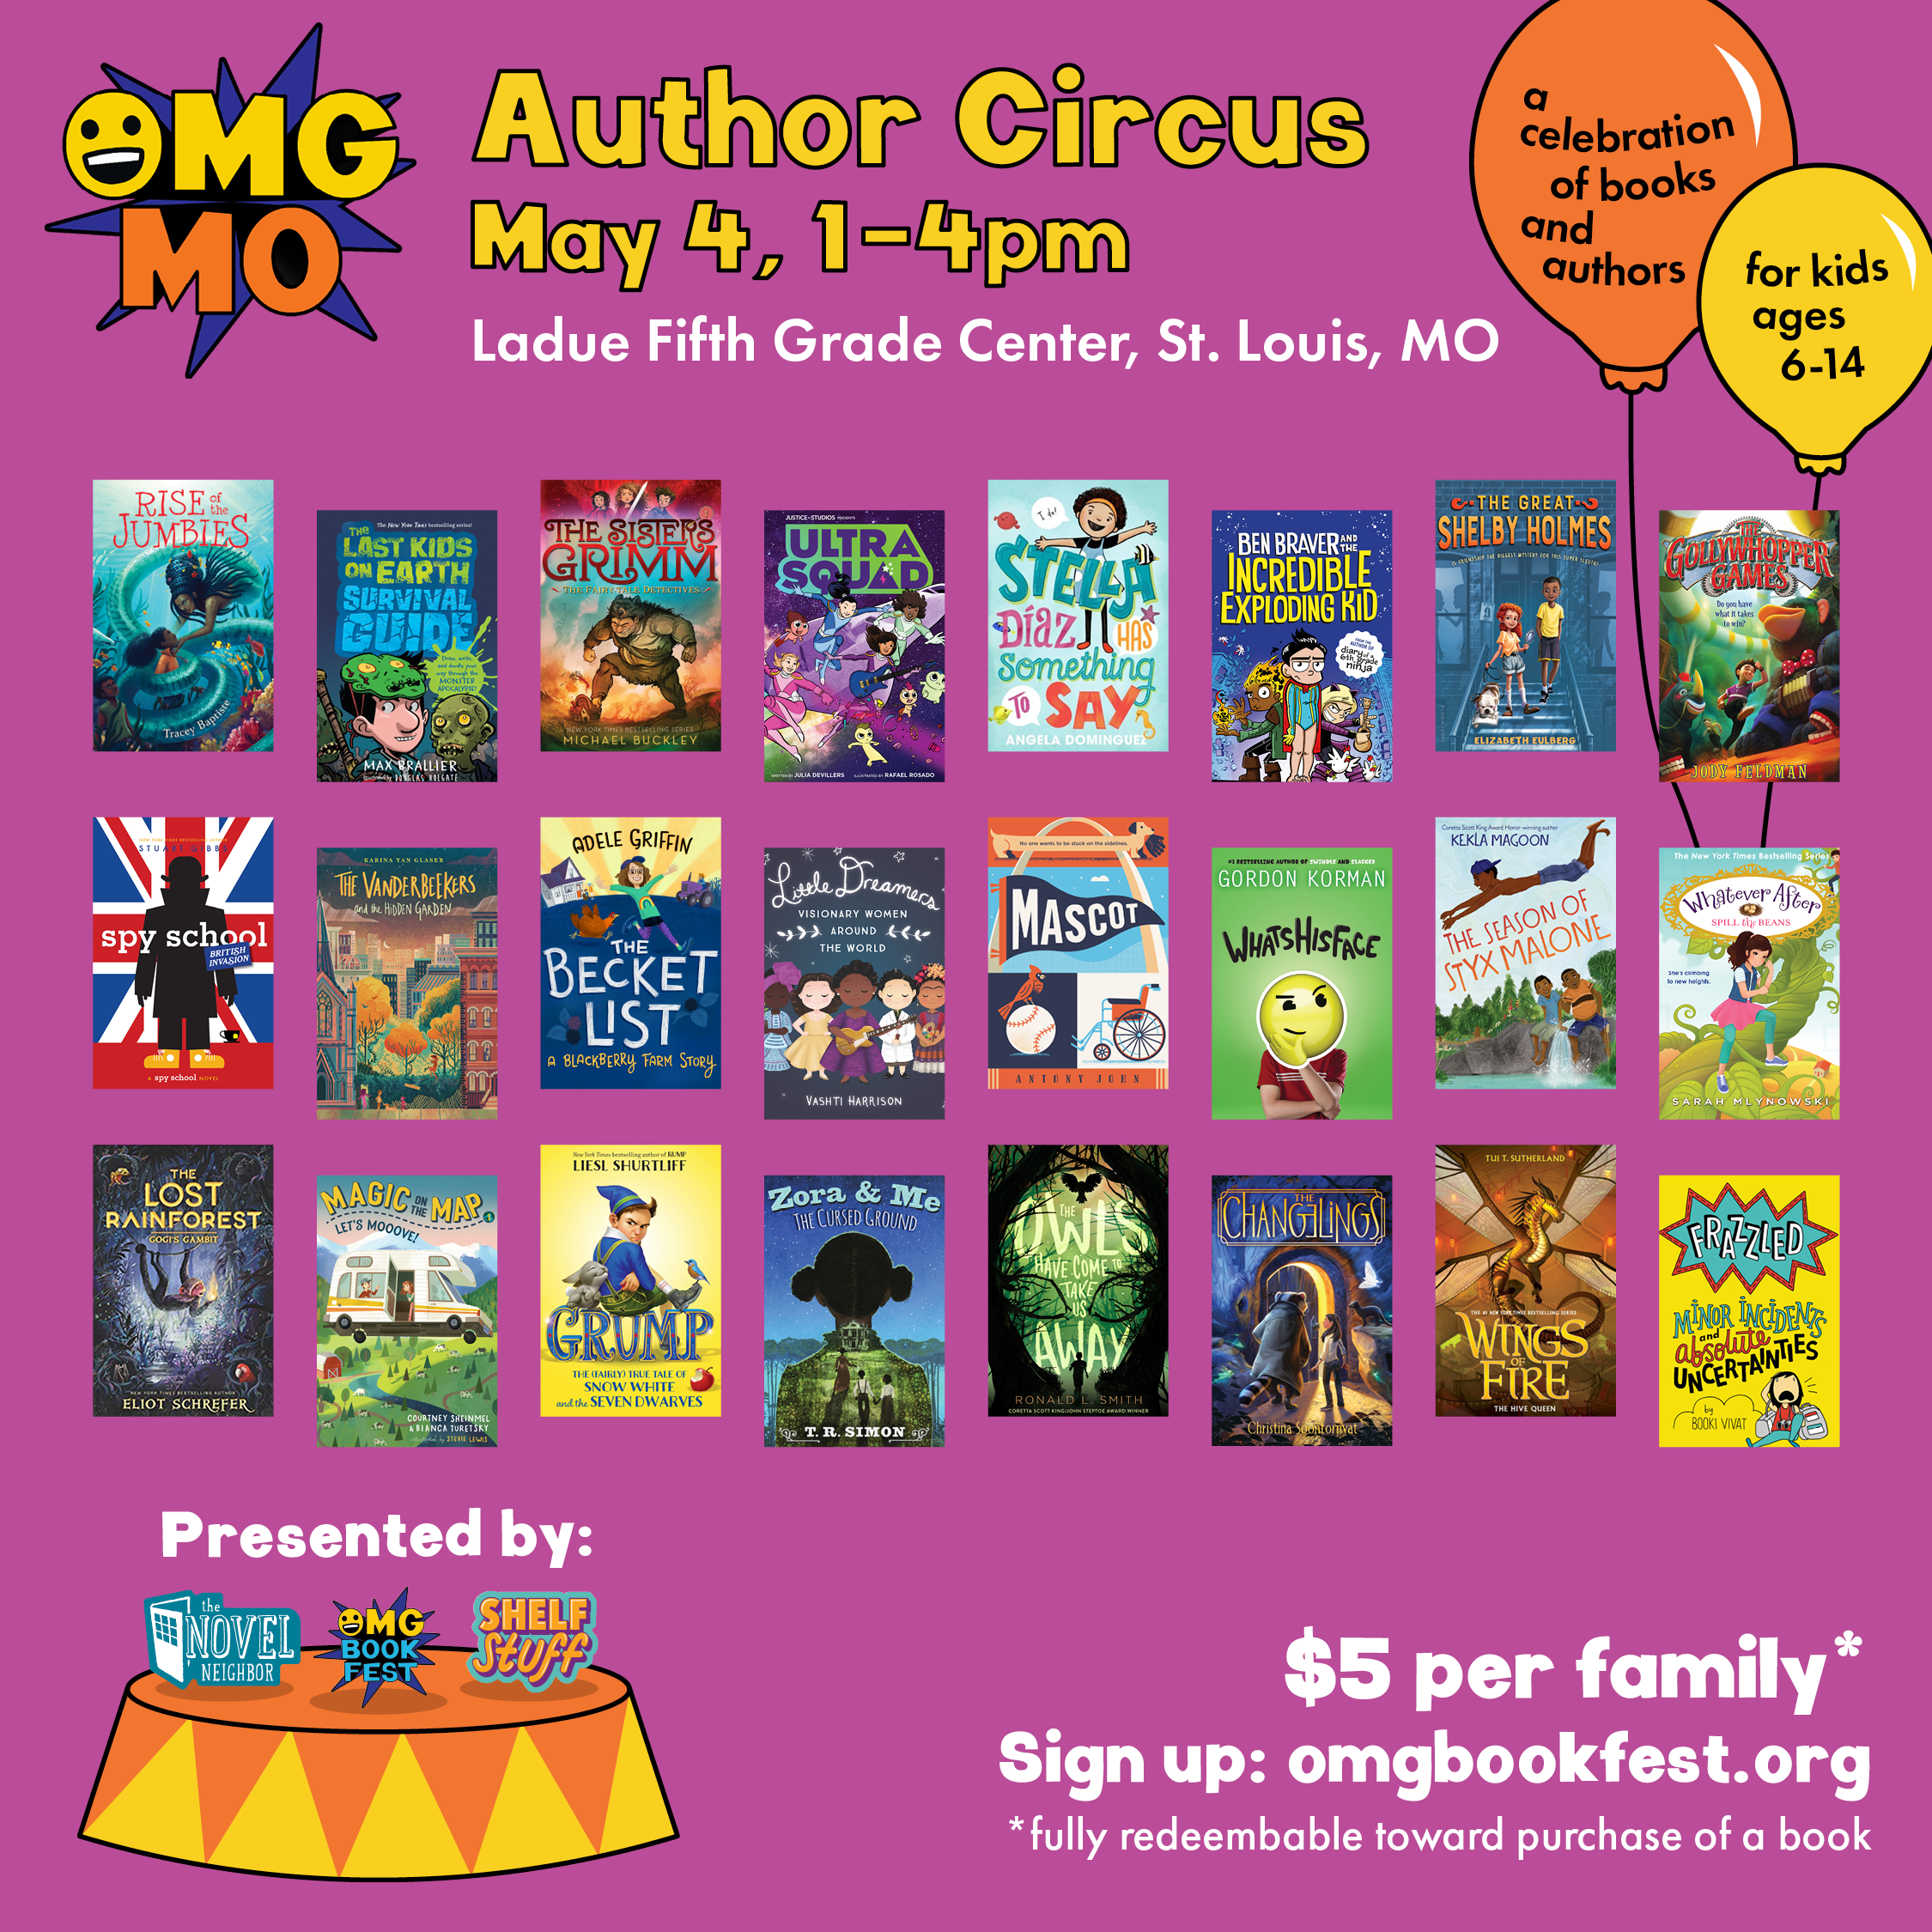 OMGMOAuthorCircus.png